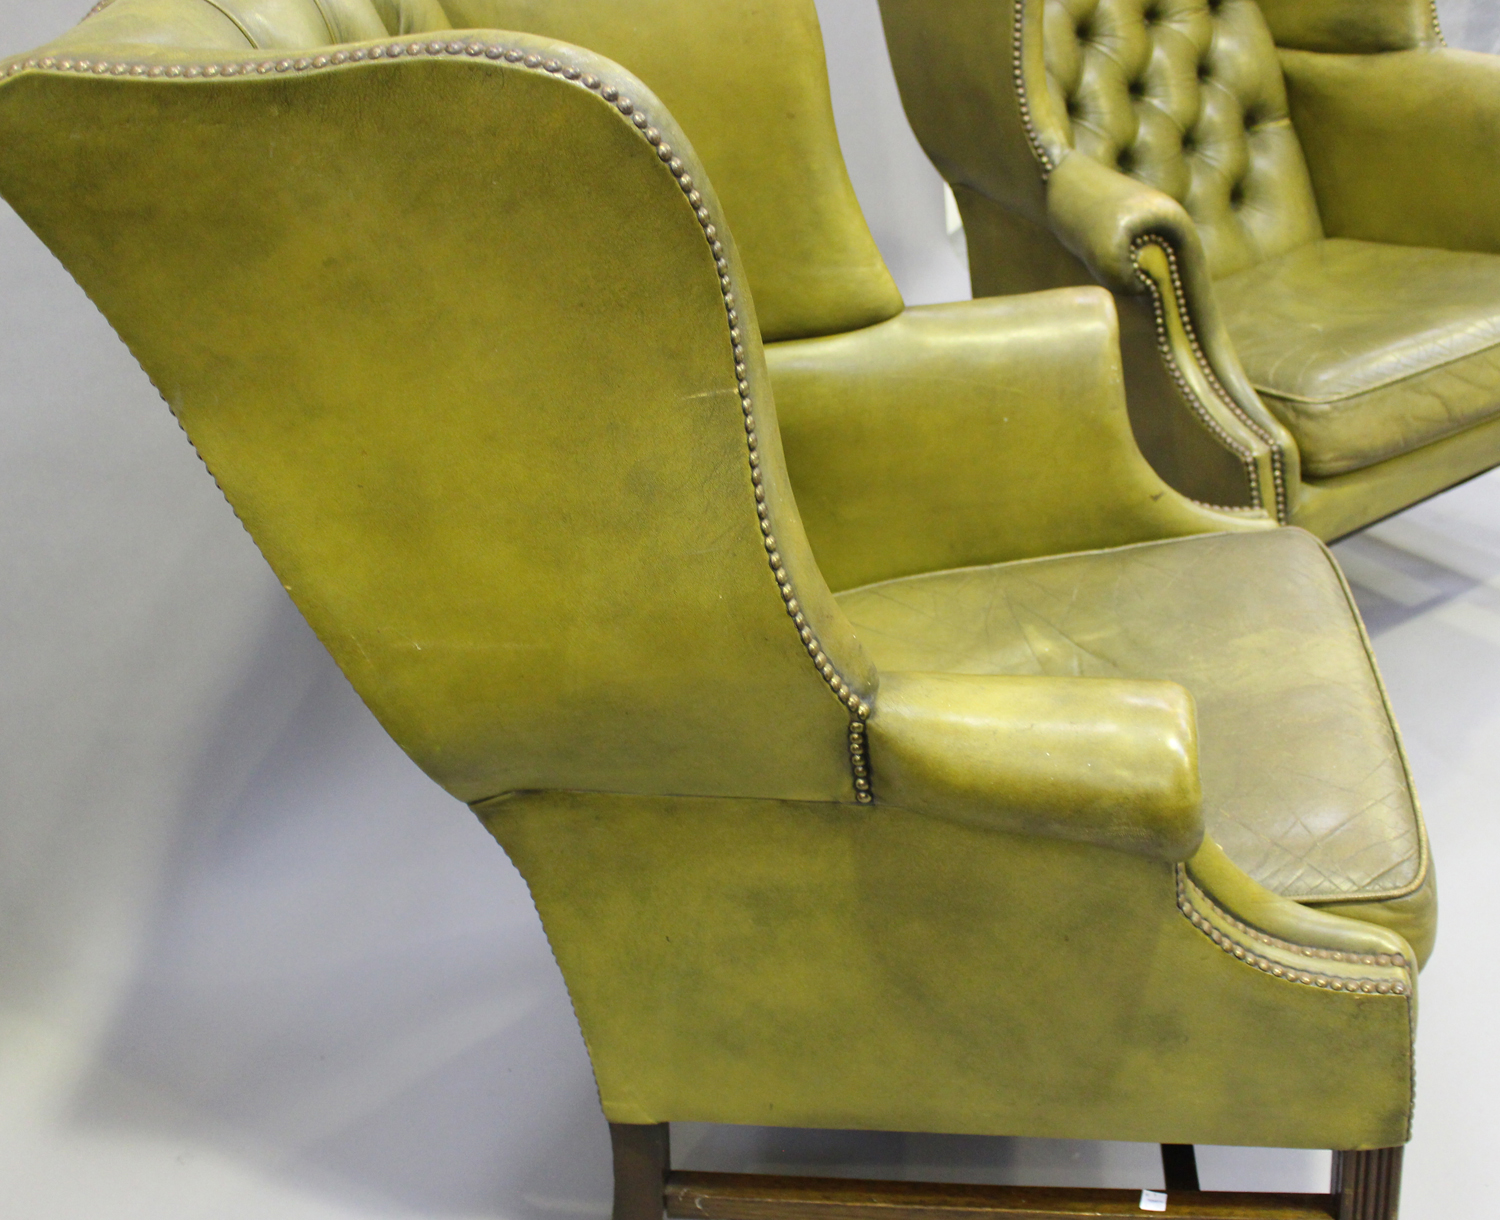 A pair of 20th century George III style wing back armchairs, upholstered in buttoned green - Image 7 of 10